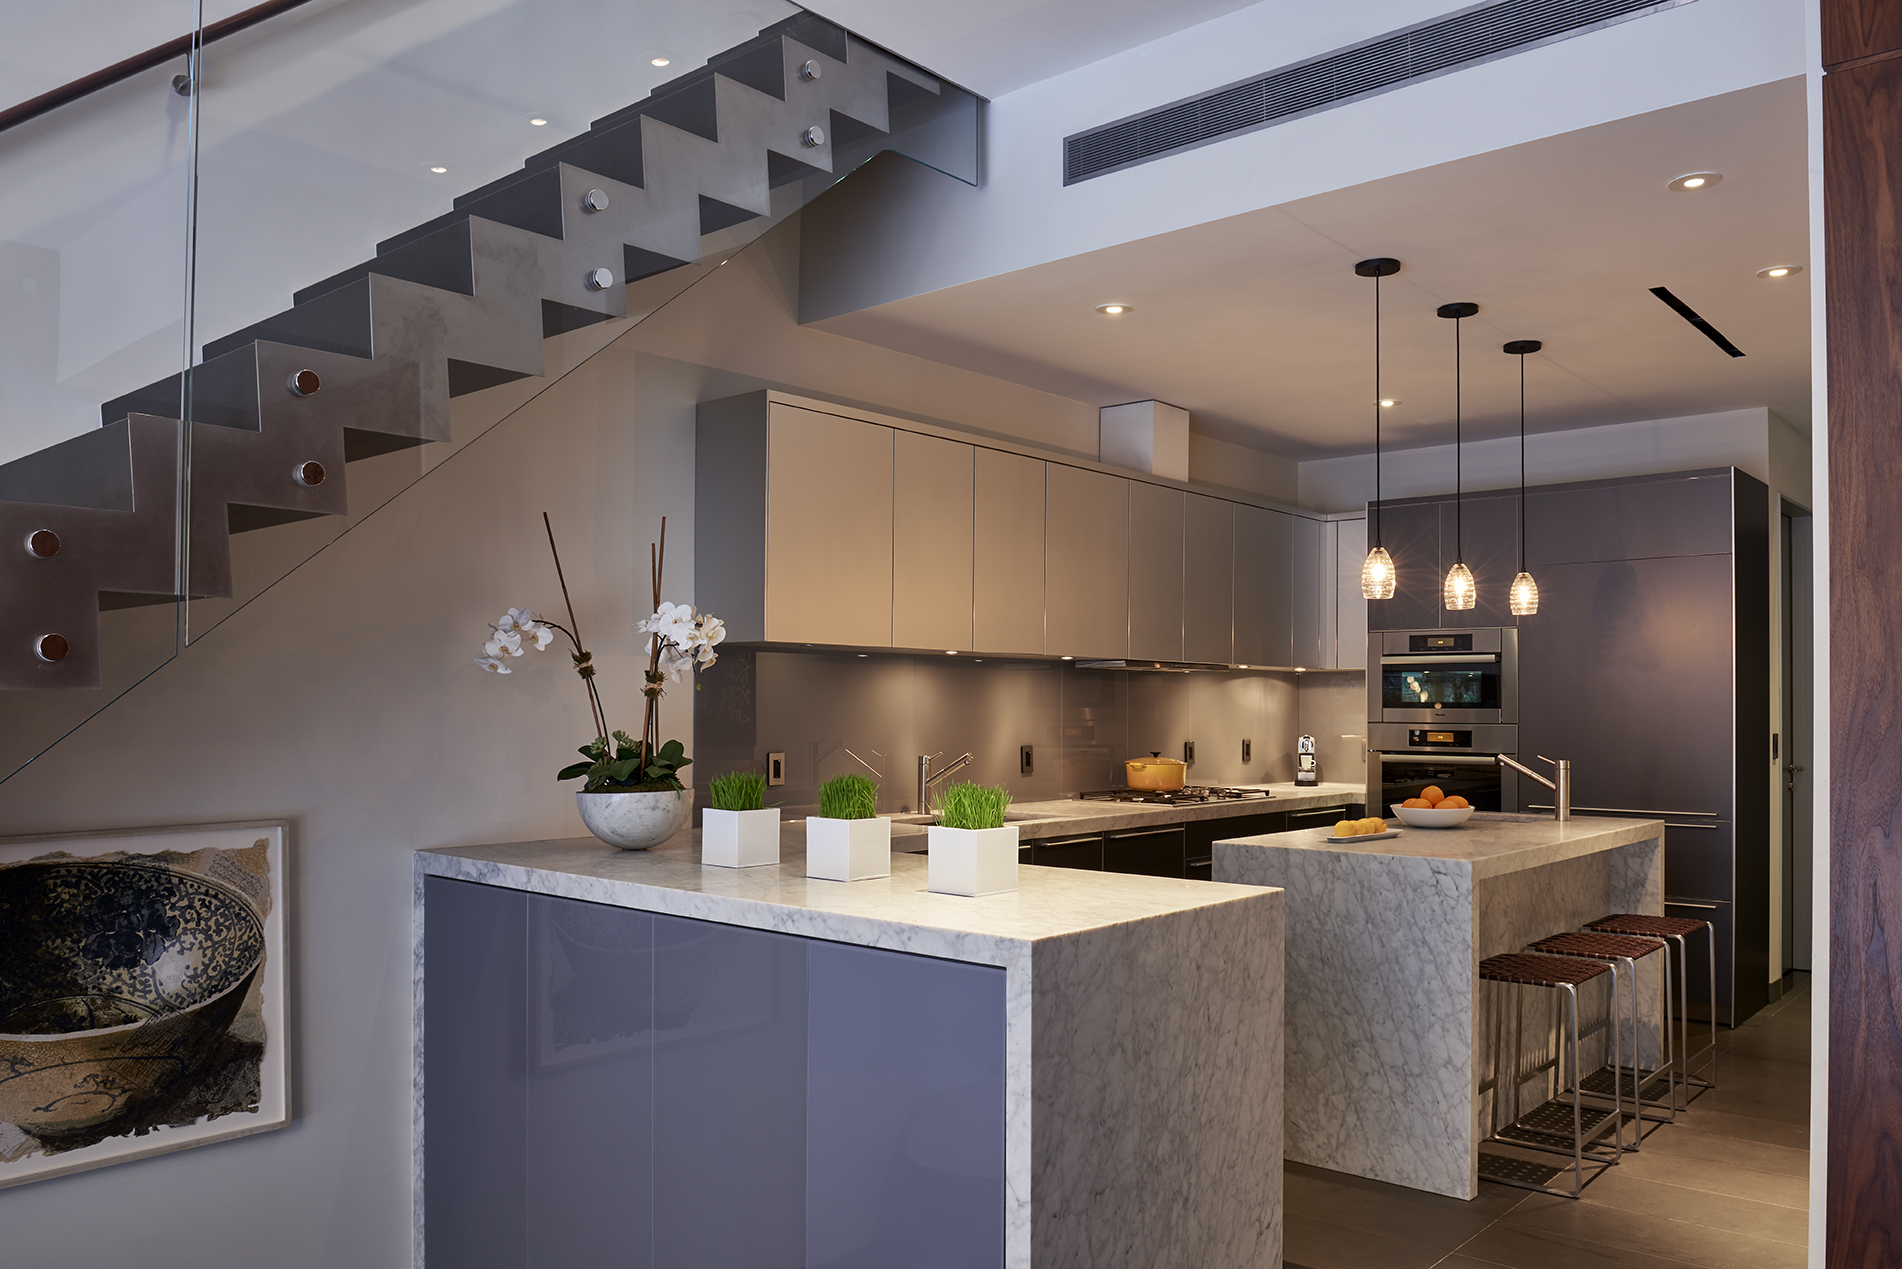 What are waterfall kitchen islands and how do I use them in an open